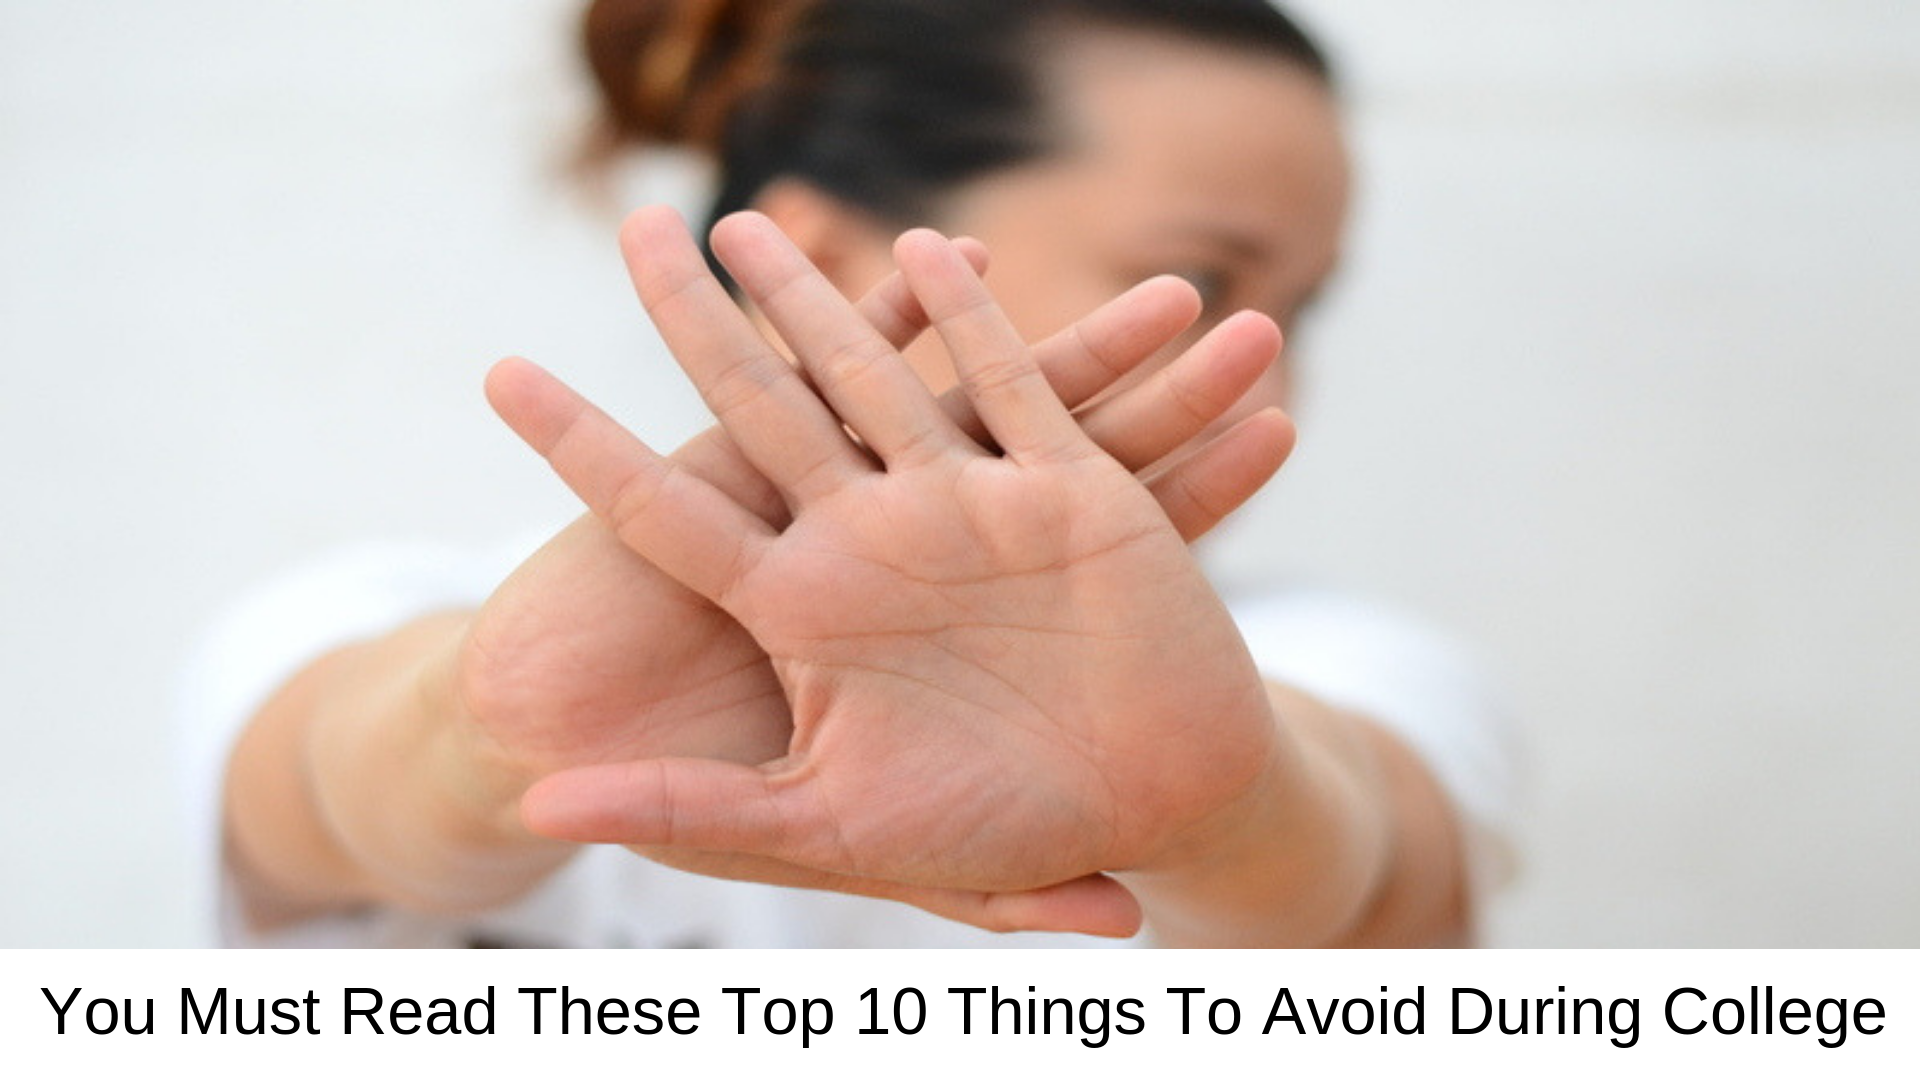 Things To Avoid During College